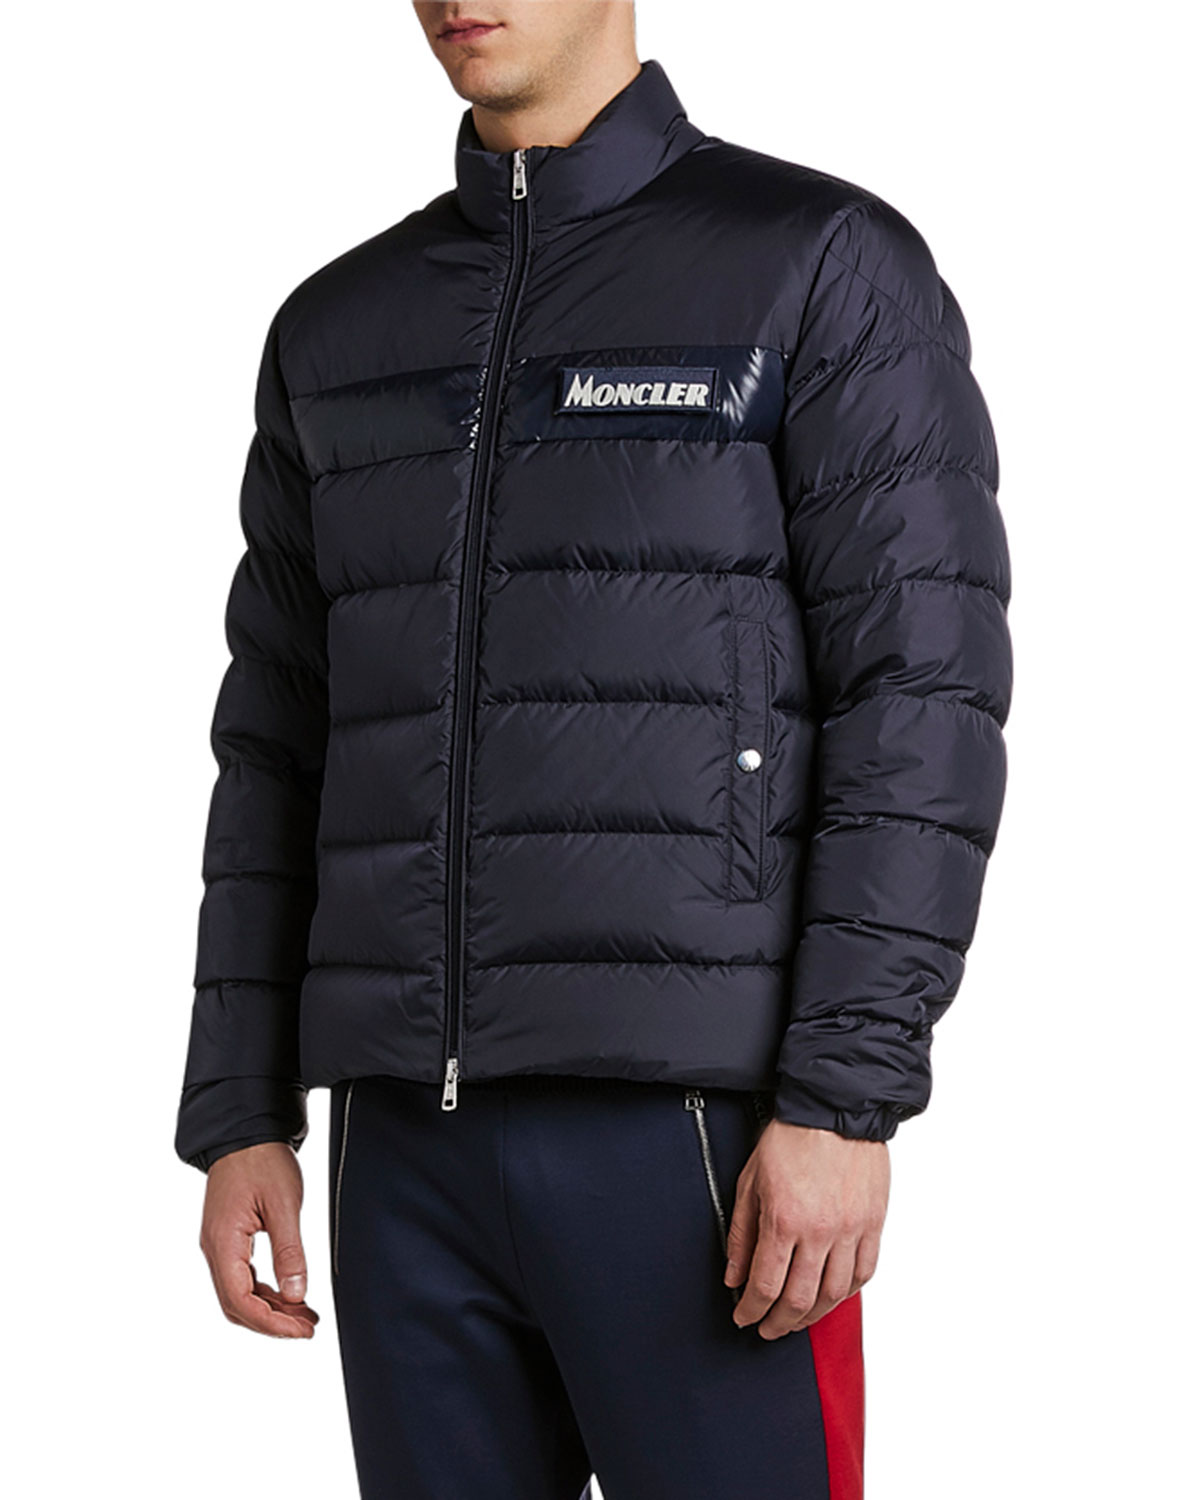 dbb8c60fa Men's Servieres Zip-Up Puffer Jacket in Blue